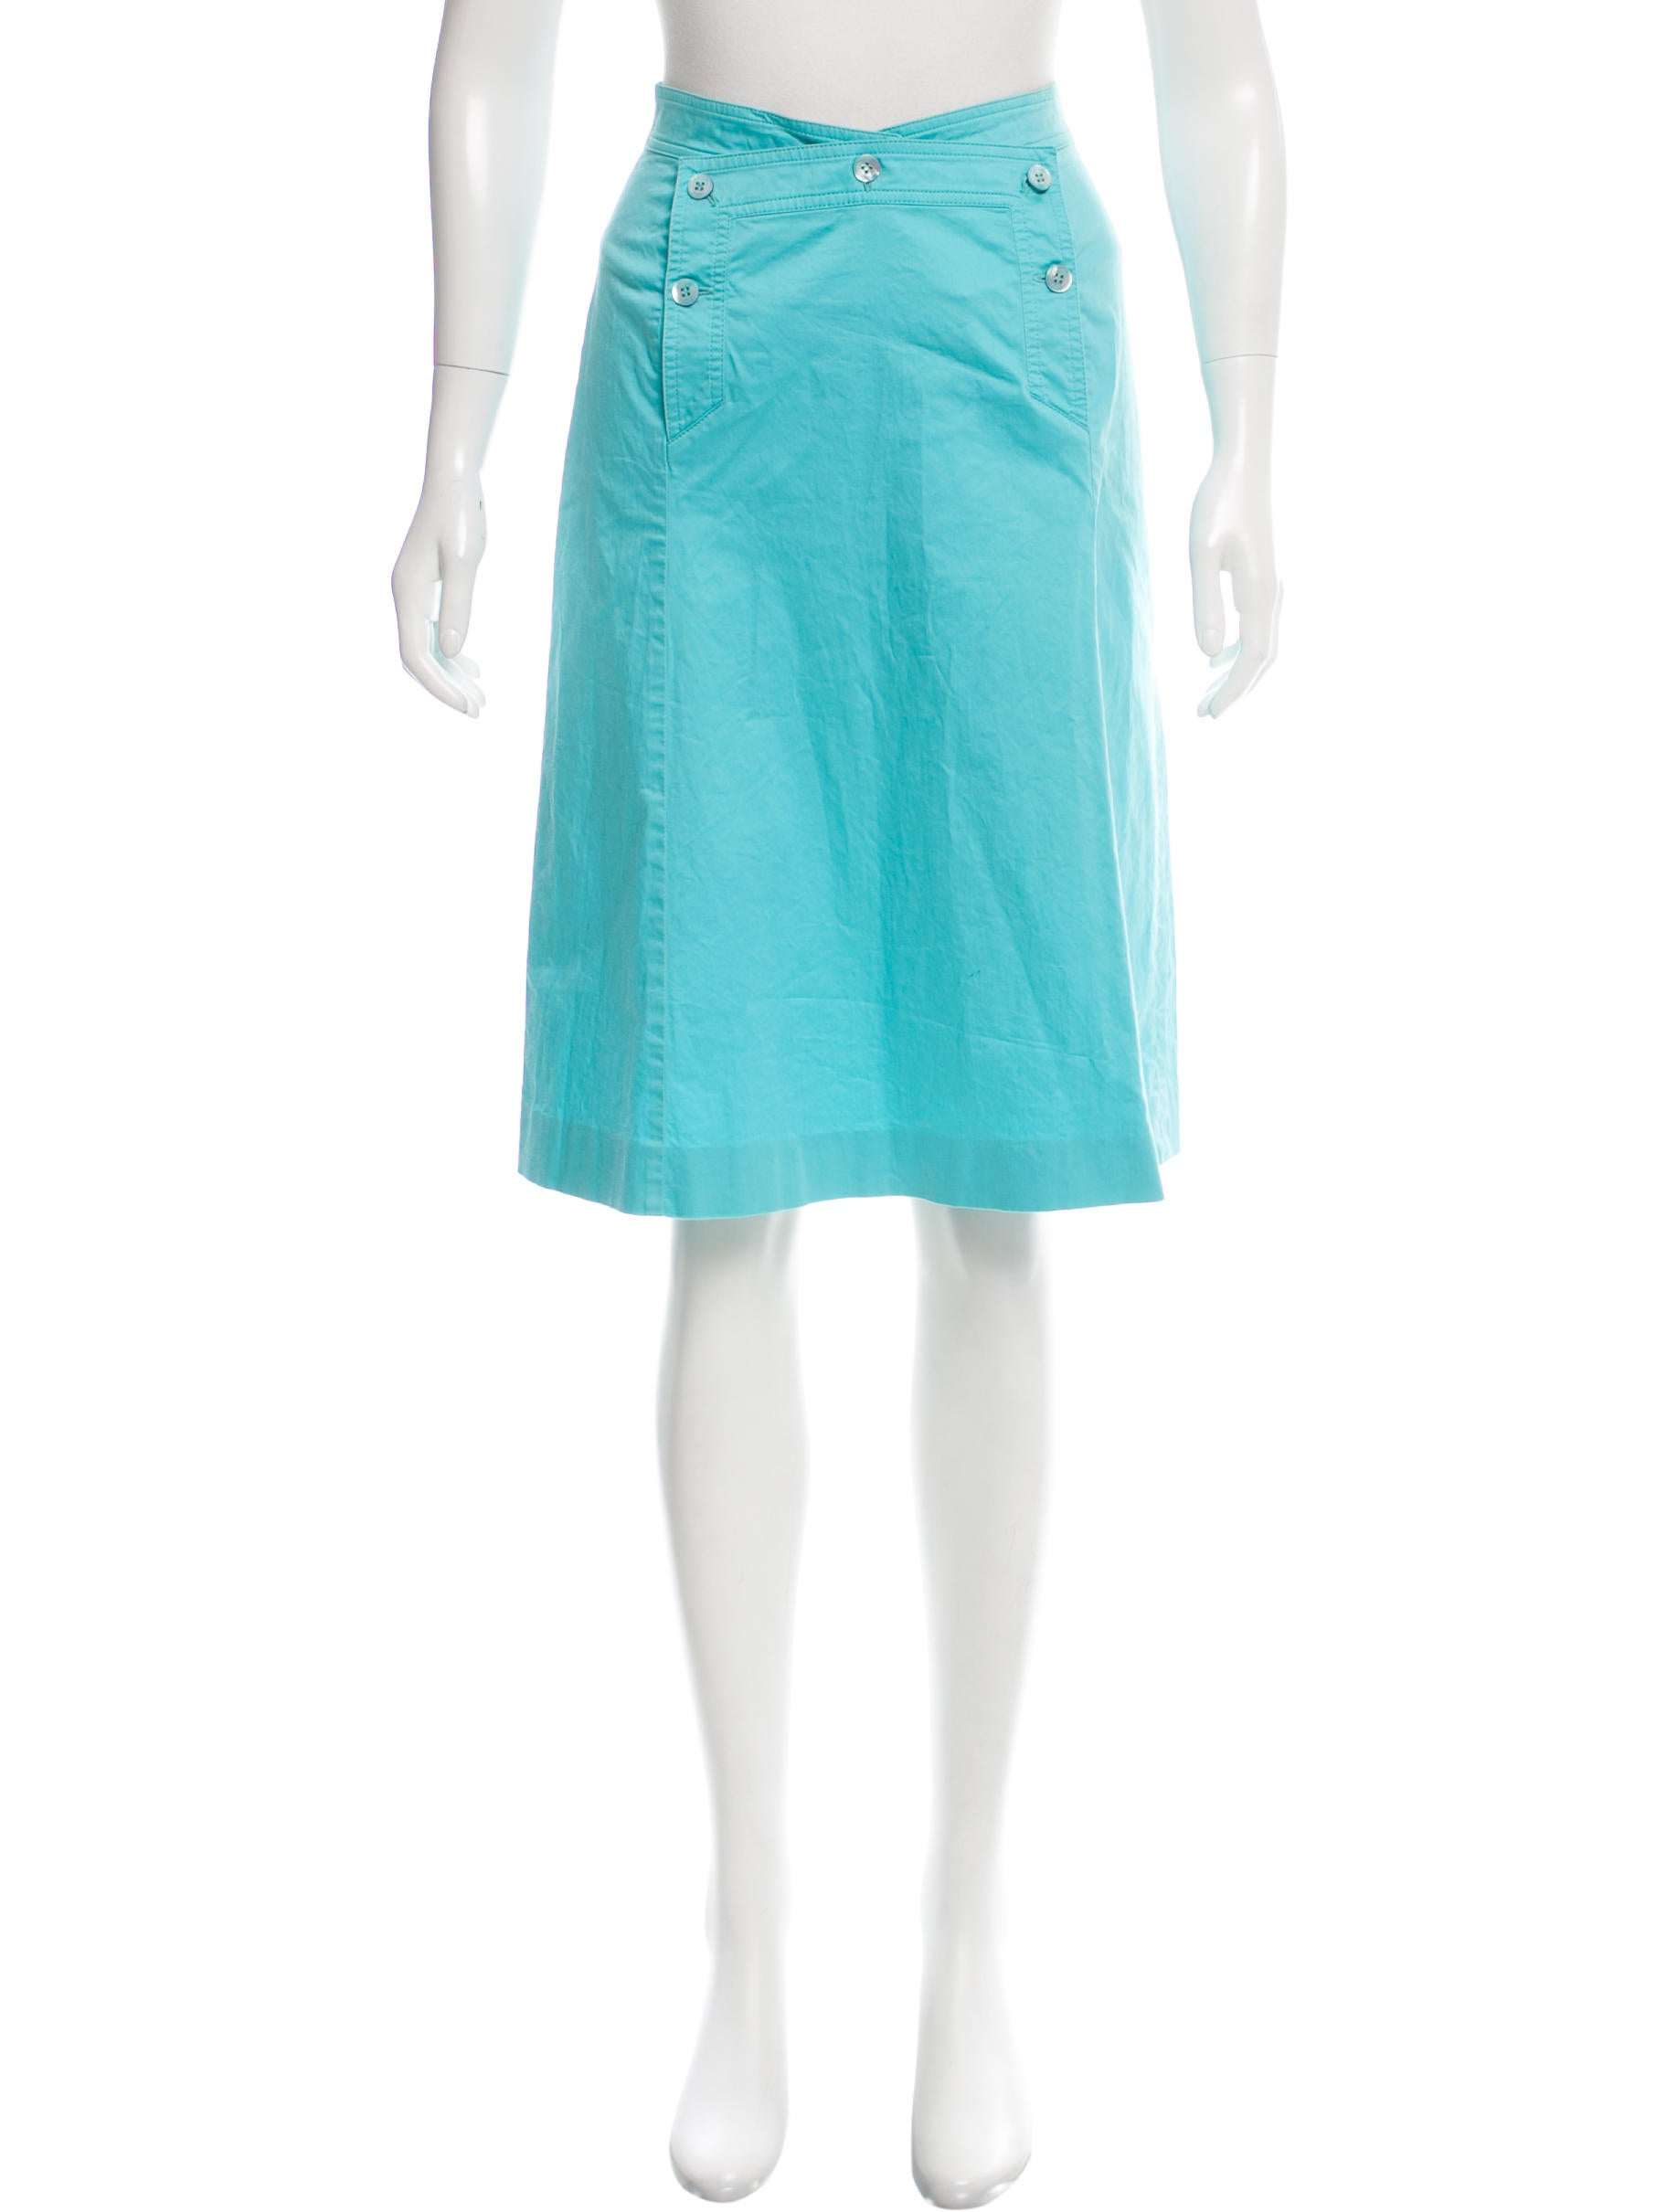 Emilio Pucci Casual A-Line Skirt - Clothing - EMI35842 | The RealReal